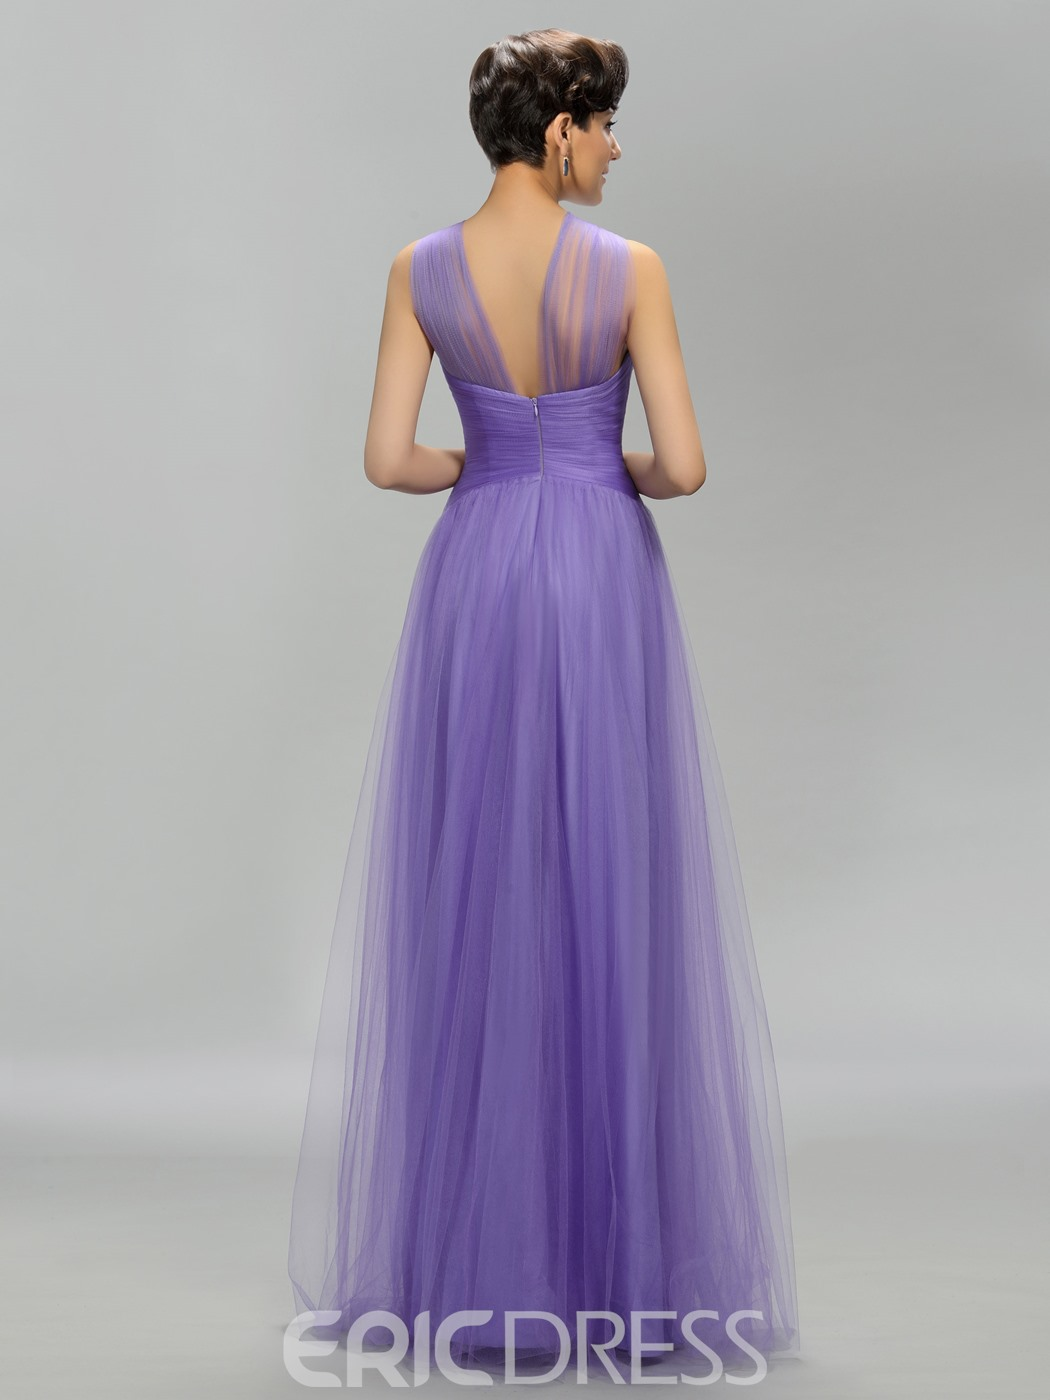 Halter A-Line Floor-Length Long Prom Dress